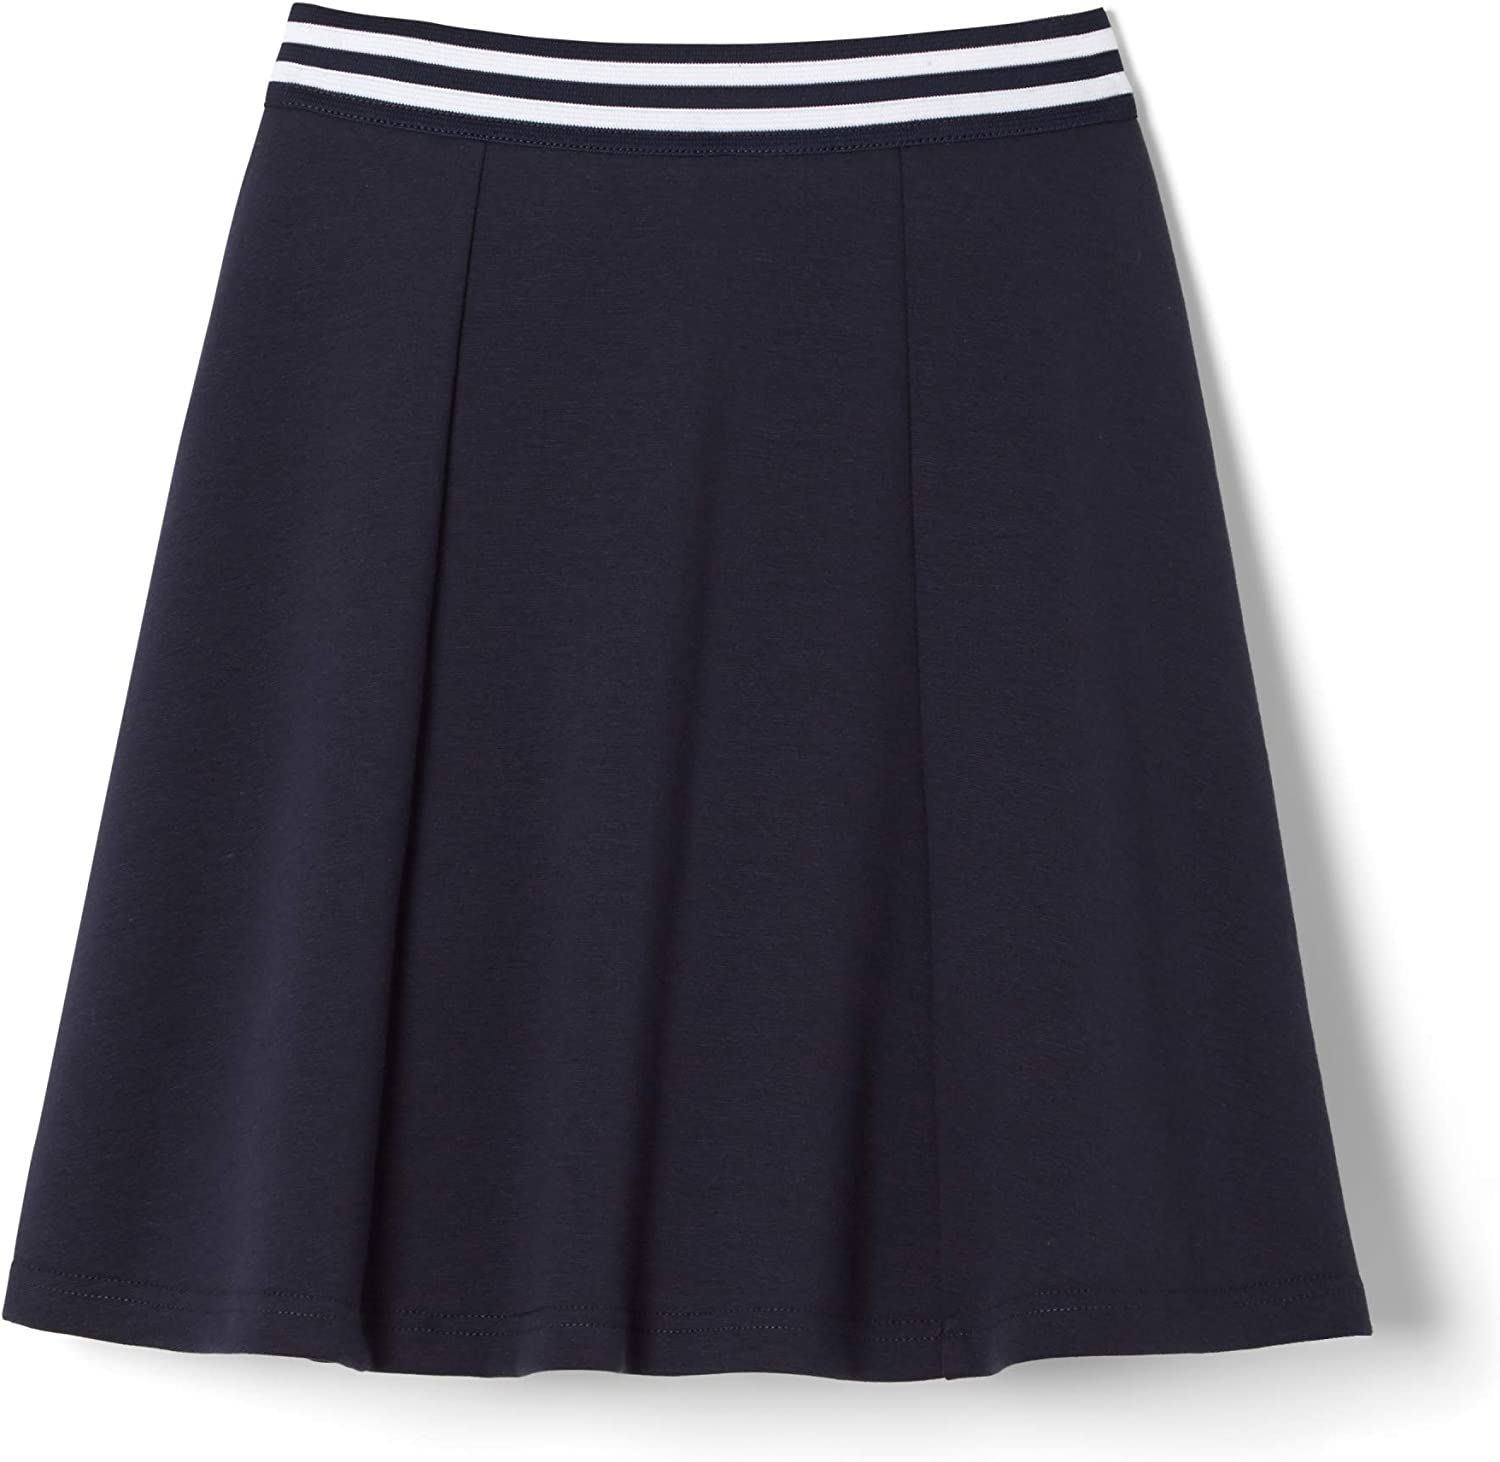 10-12 French Toast Big Girls Contrast Waistband Scooter Skirt Navy